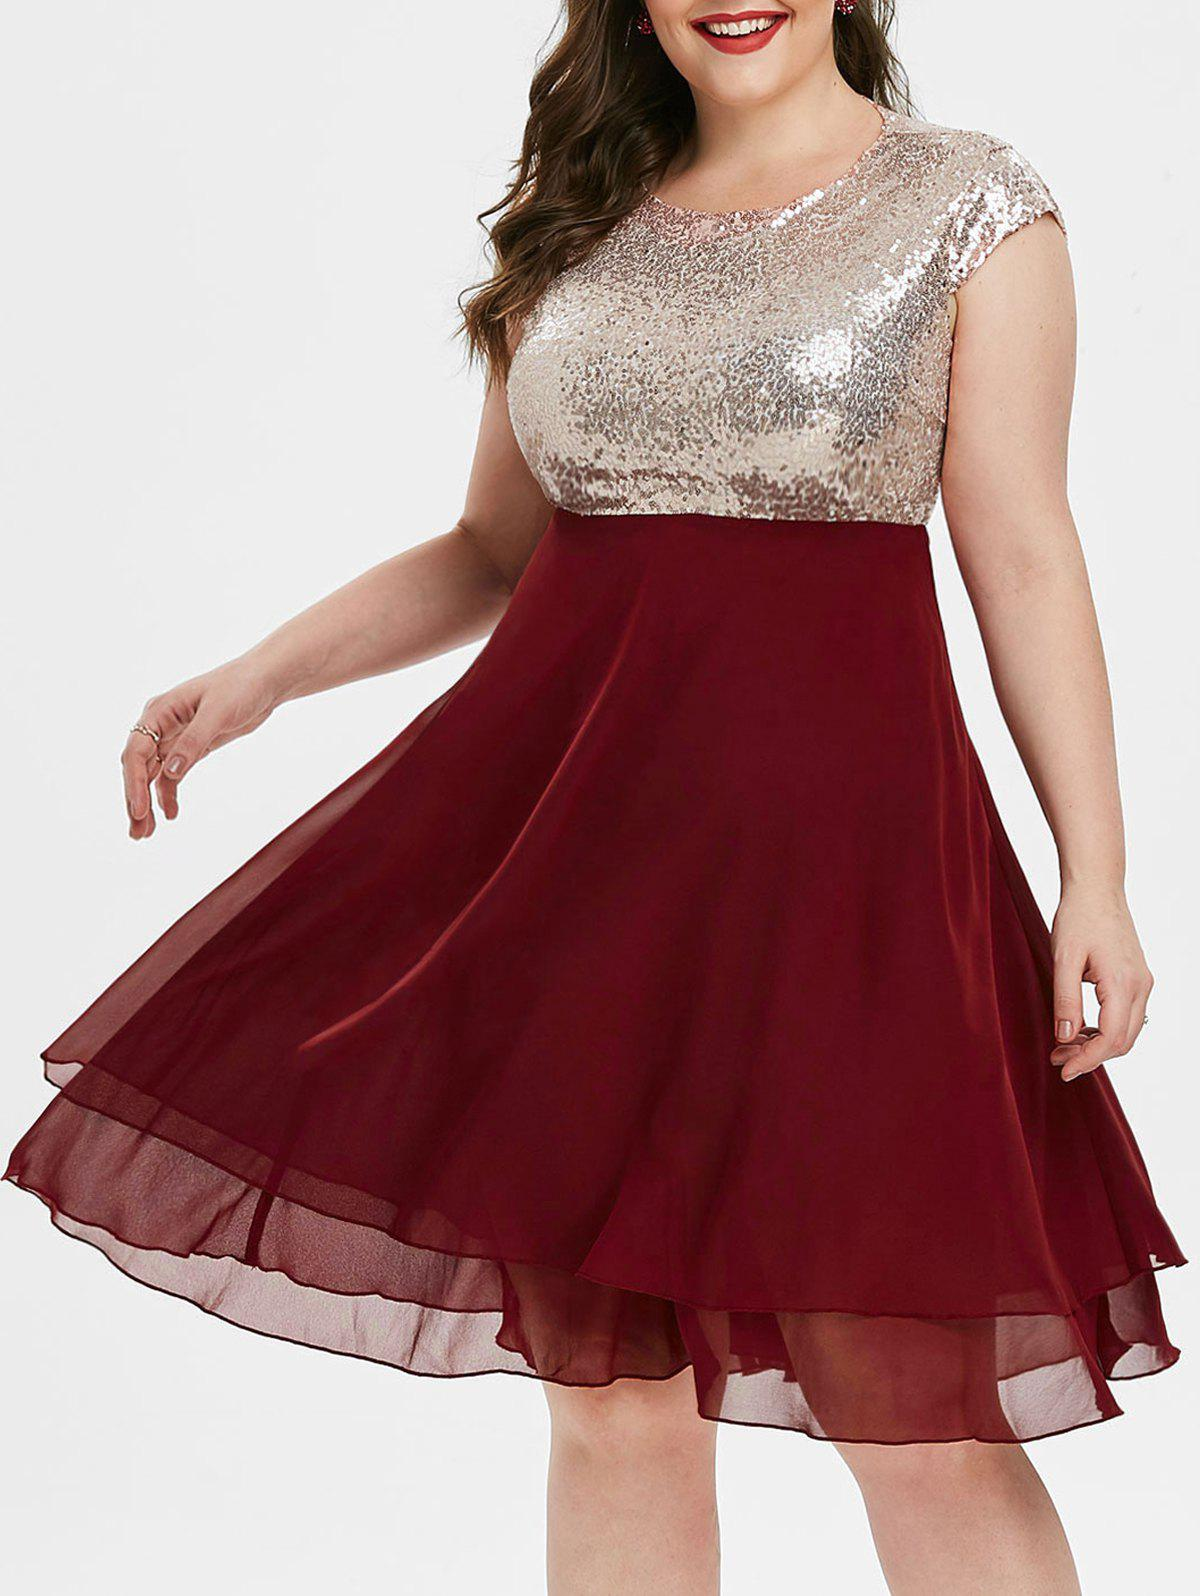 Mancherons en mousseline de soie pailletée Panel Plus Size robe de bal - Rouge Vineux 3X